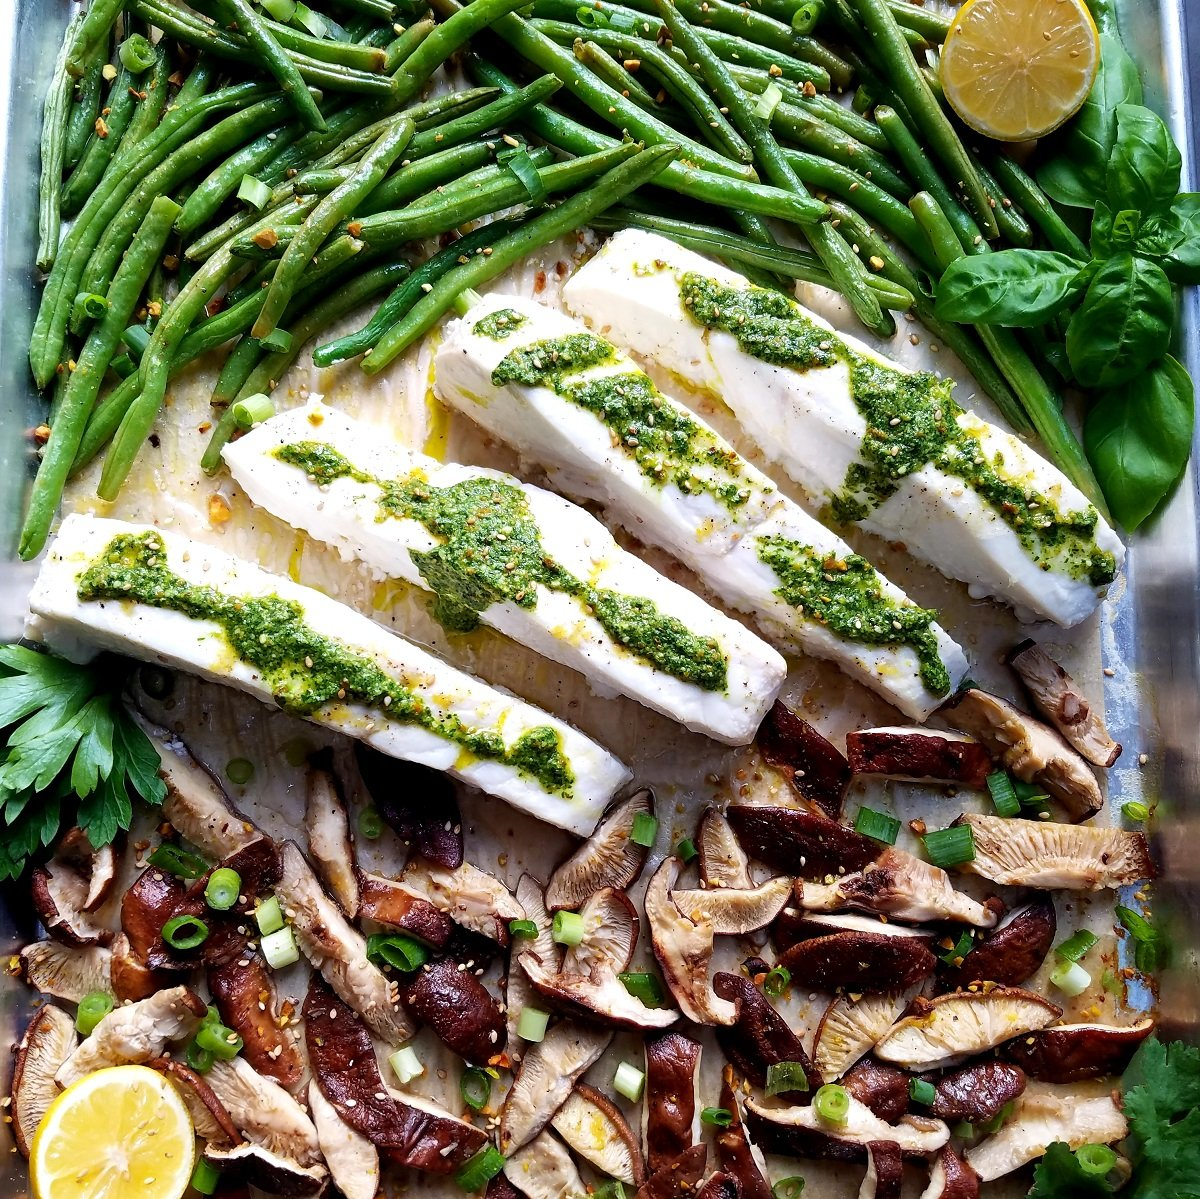 Roasted halibut and vegetables topped with pesto and served from sheet pan.